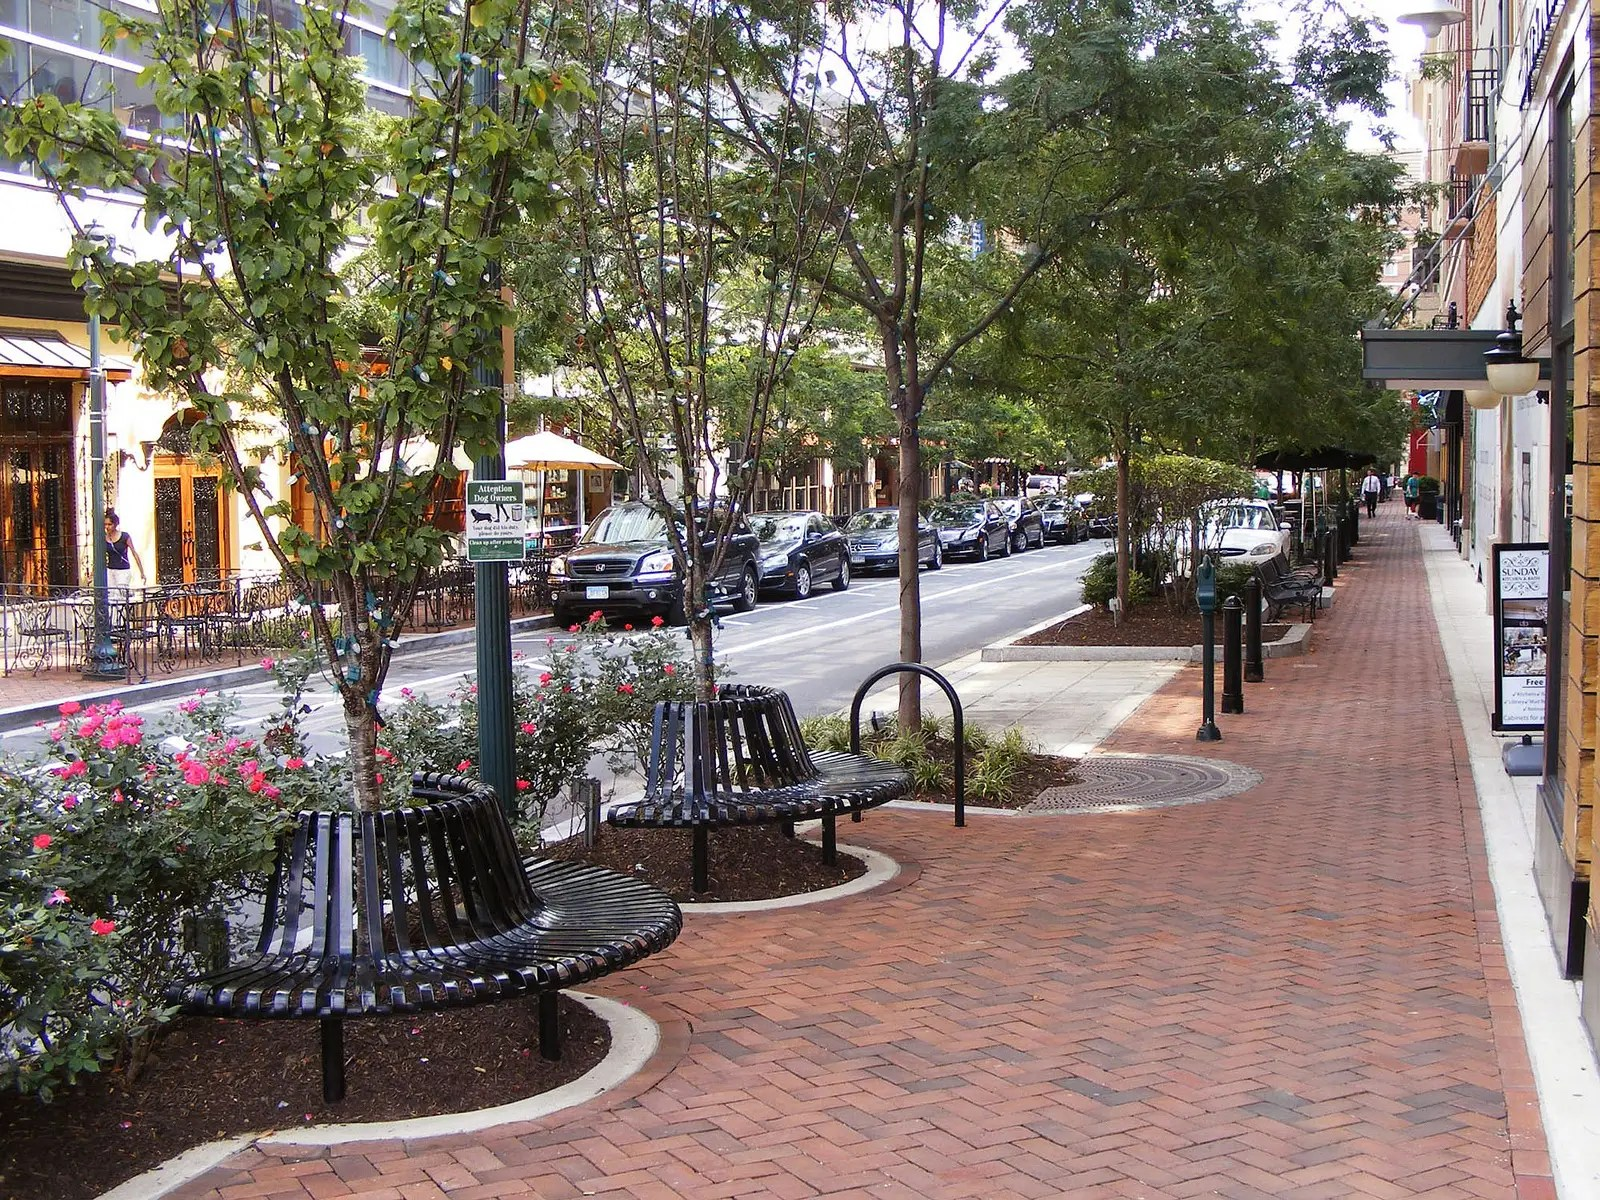 19. Rockville, Maryland